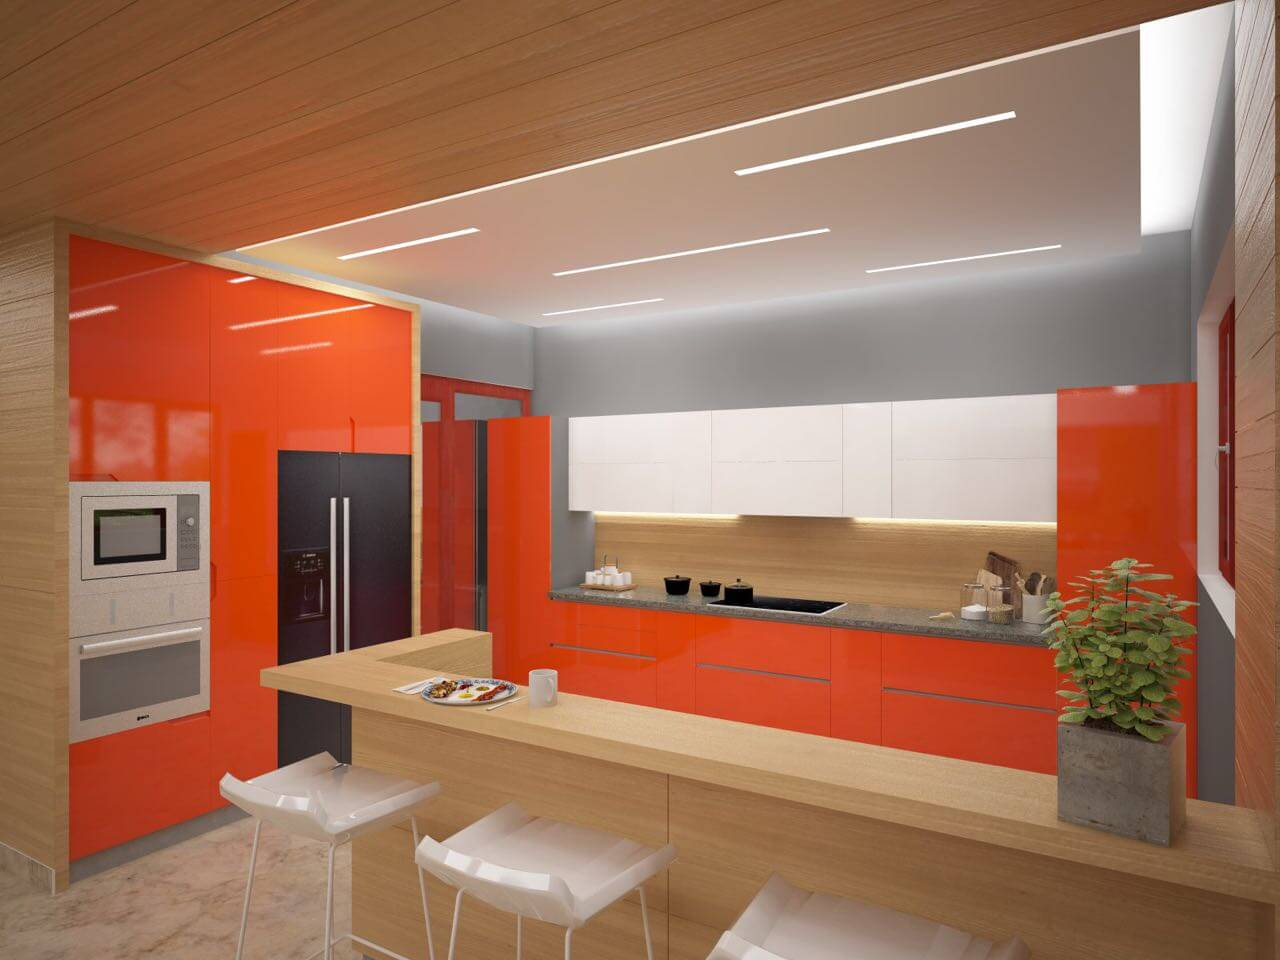 Combination of Wood and Orange Accent